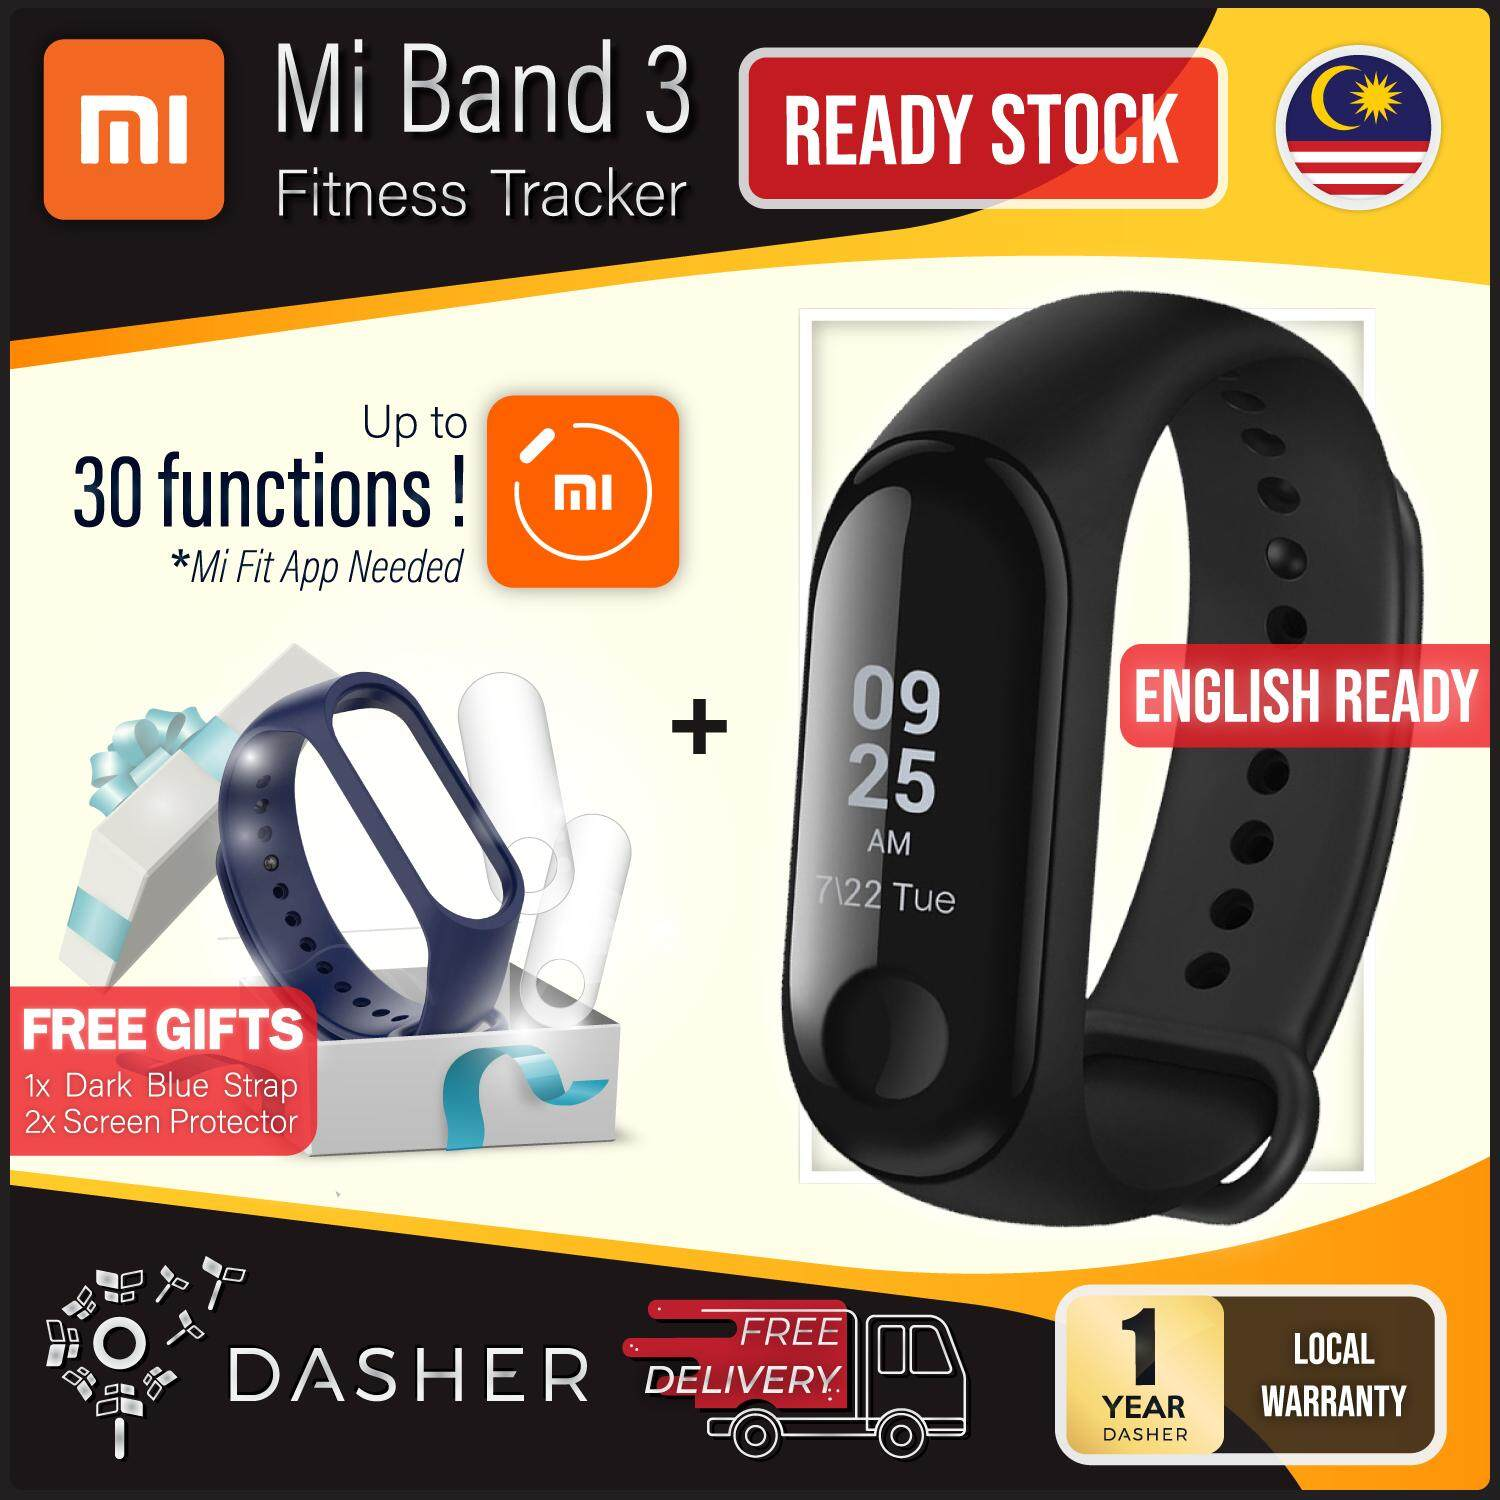 【free Gifts!】 Xiaomi Mi Band 3 Touch Screen Oled Smart Wristband 0.78 Waterproof (black) - Xiao Mi Miband 3 Smartwatch Heart Rate Tracker Smart Wear By Dmd Online.